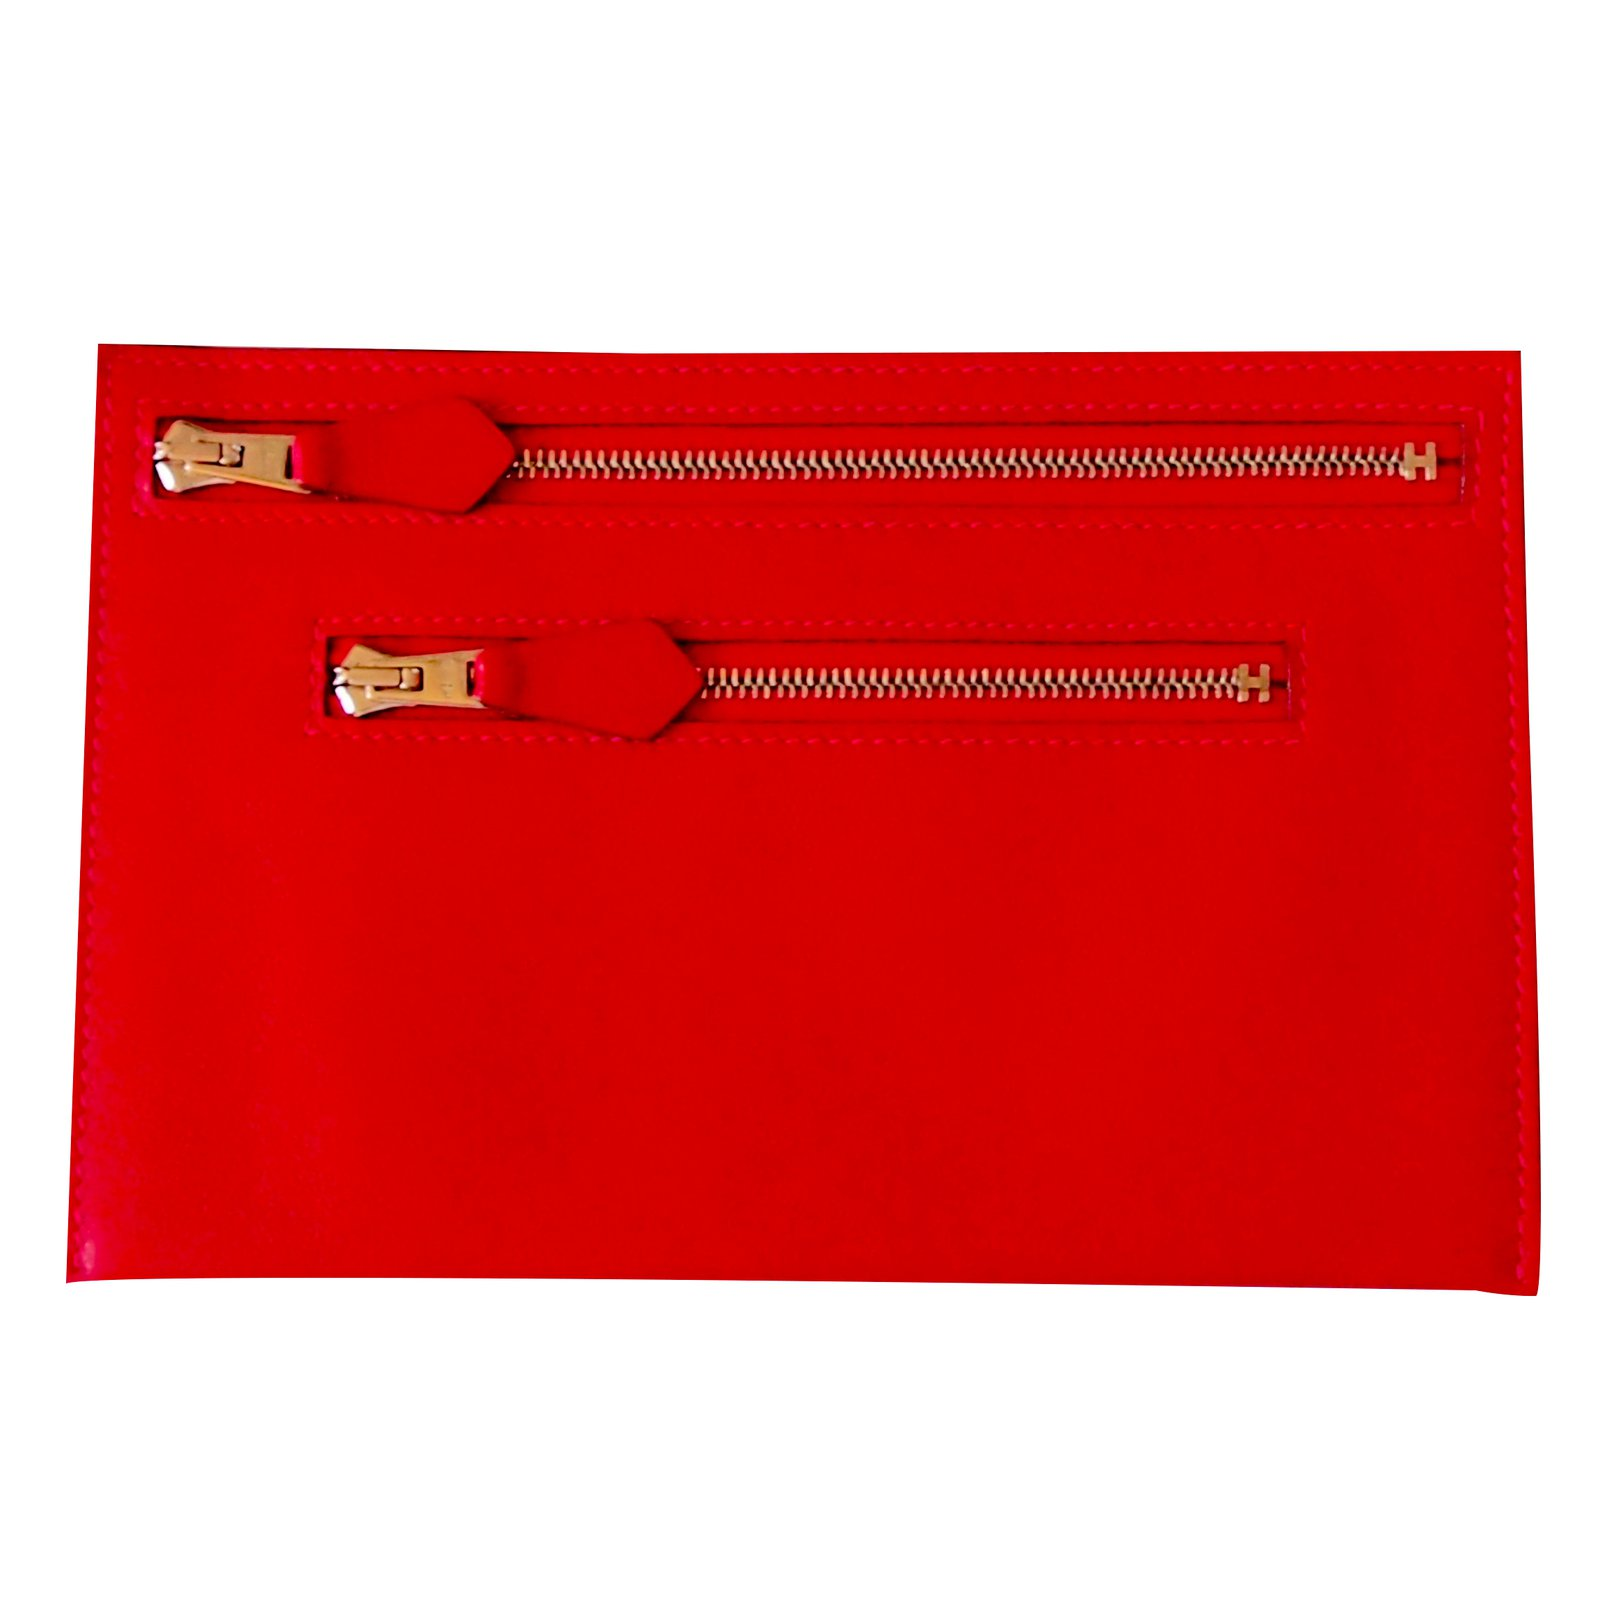 Hermès Purse Wallets Leather Red ref.23115 - Joli Closet c01cf4f7e4eb